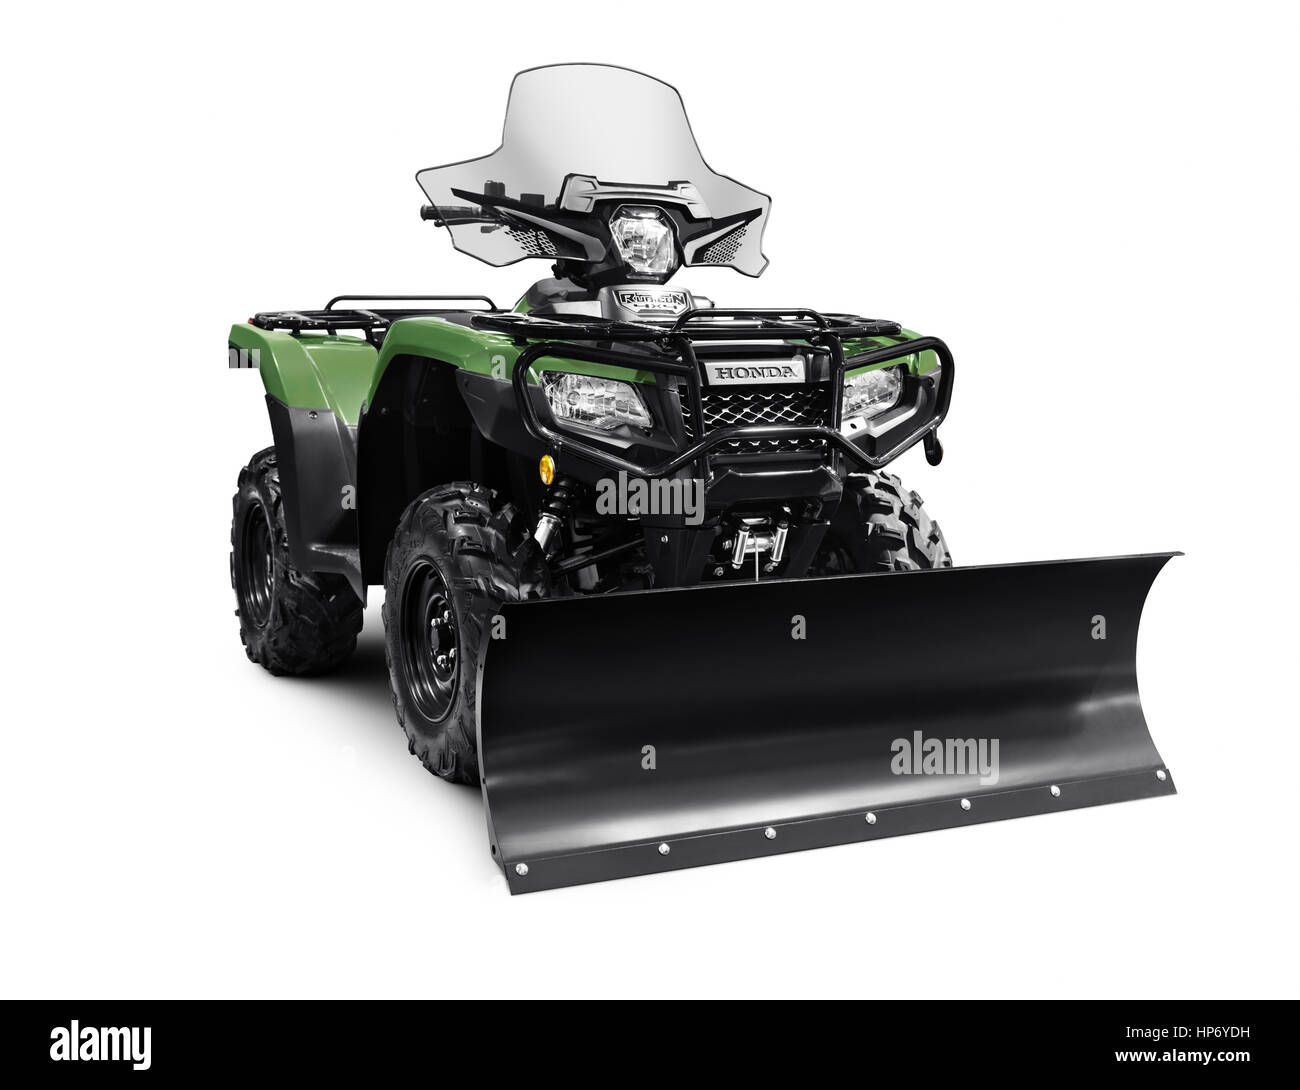 2017 Honda Rubicon Foreman 500 4x4 ATV with snow plow blade isolated on white background with clipping path - Stock Image